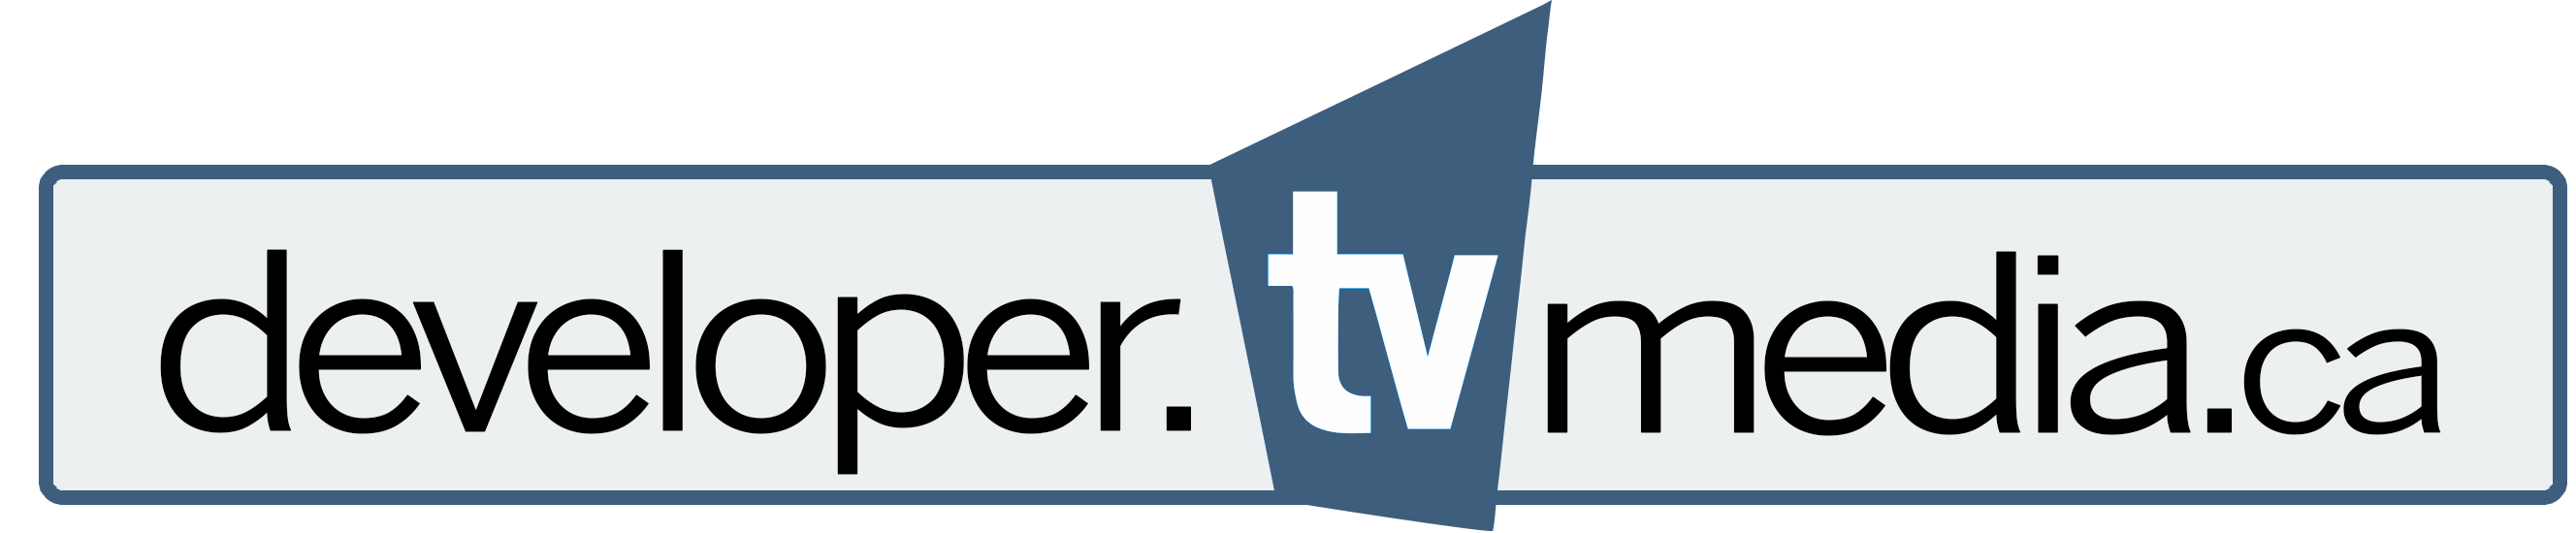 developer.tvmedia.ca